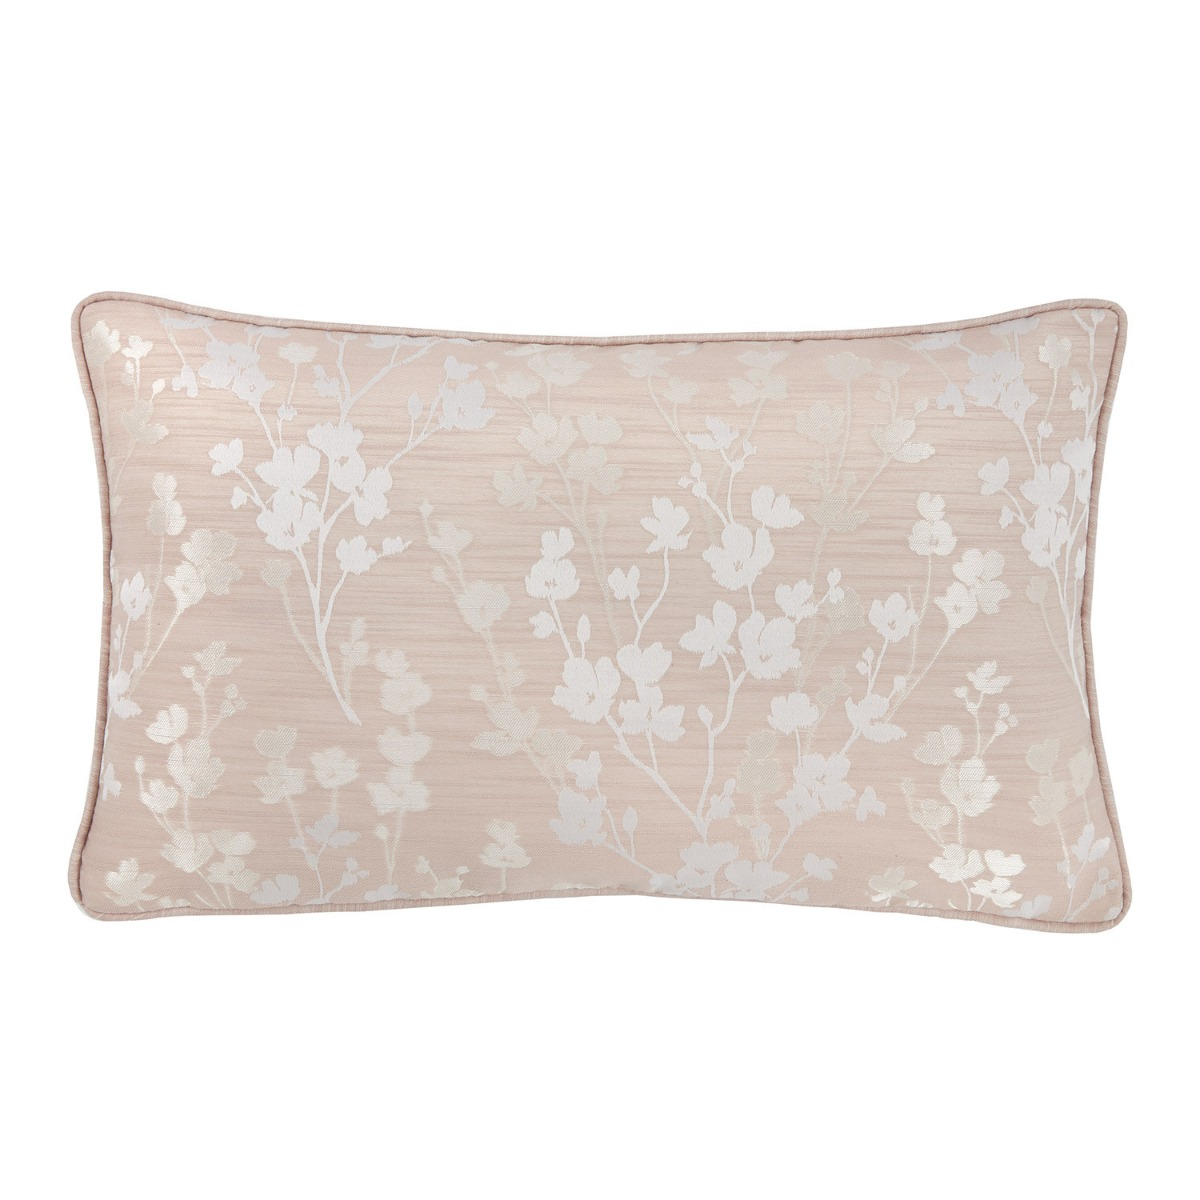 Blossom Pink Luxury Filled Boudoir Cushion